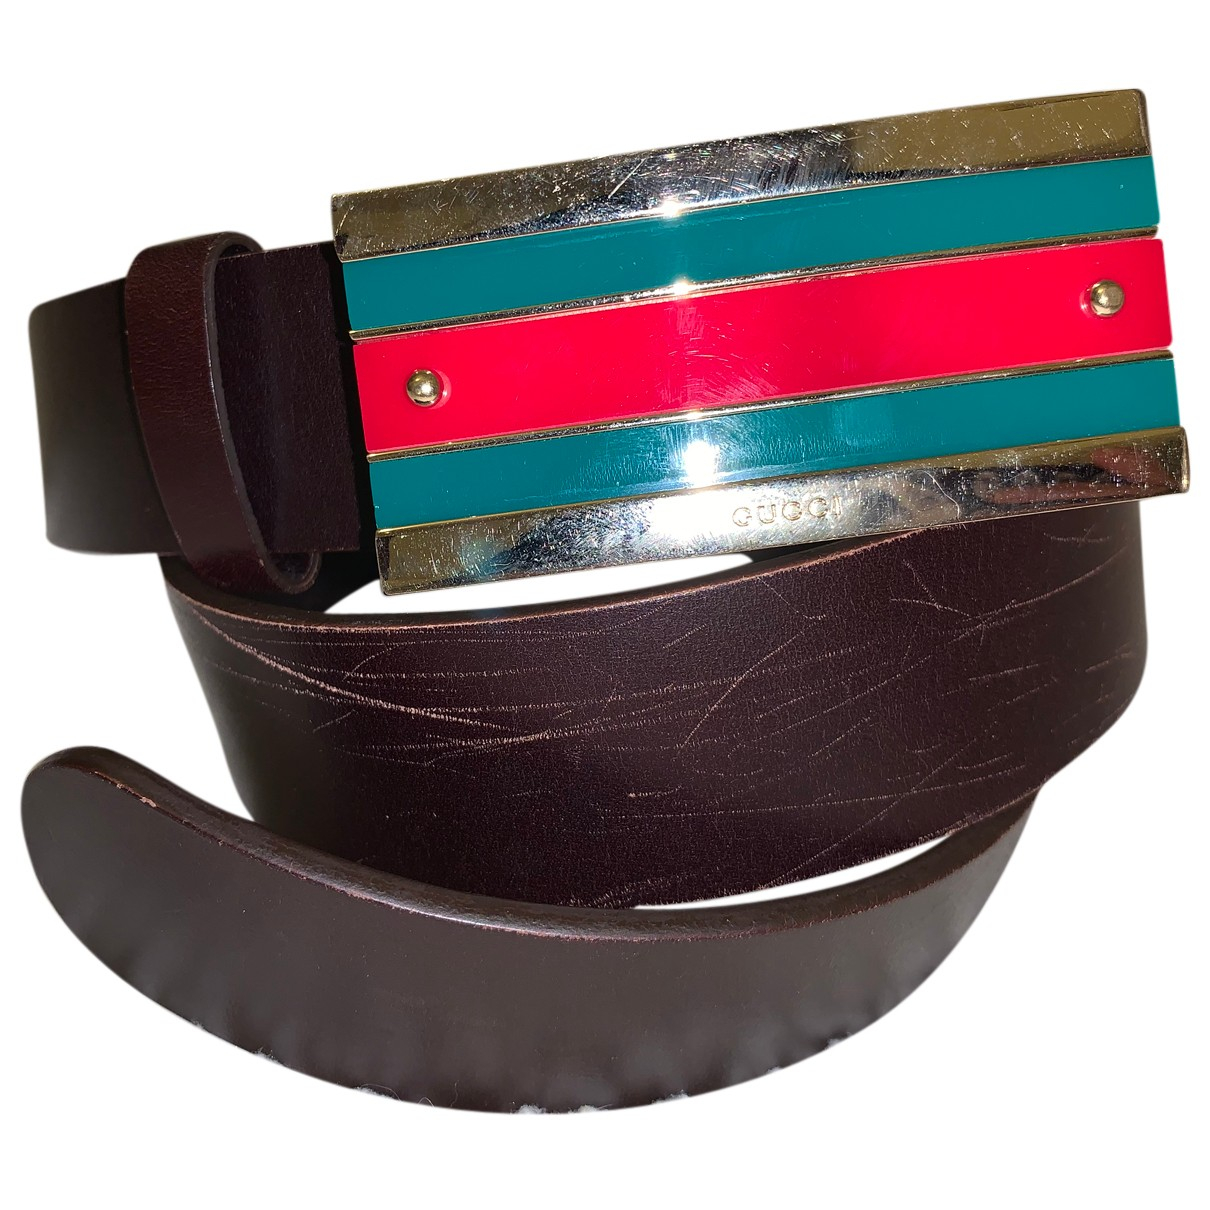 Gucci N Brown Leather belt for Women 80 cm